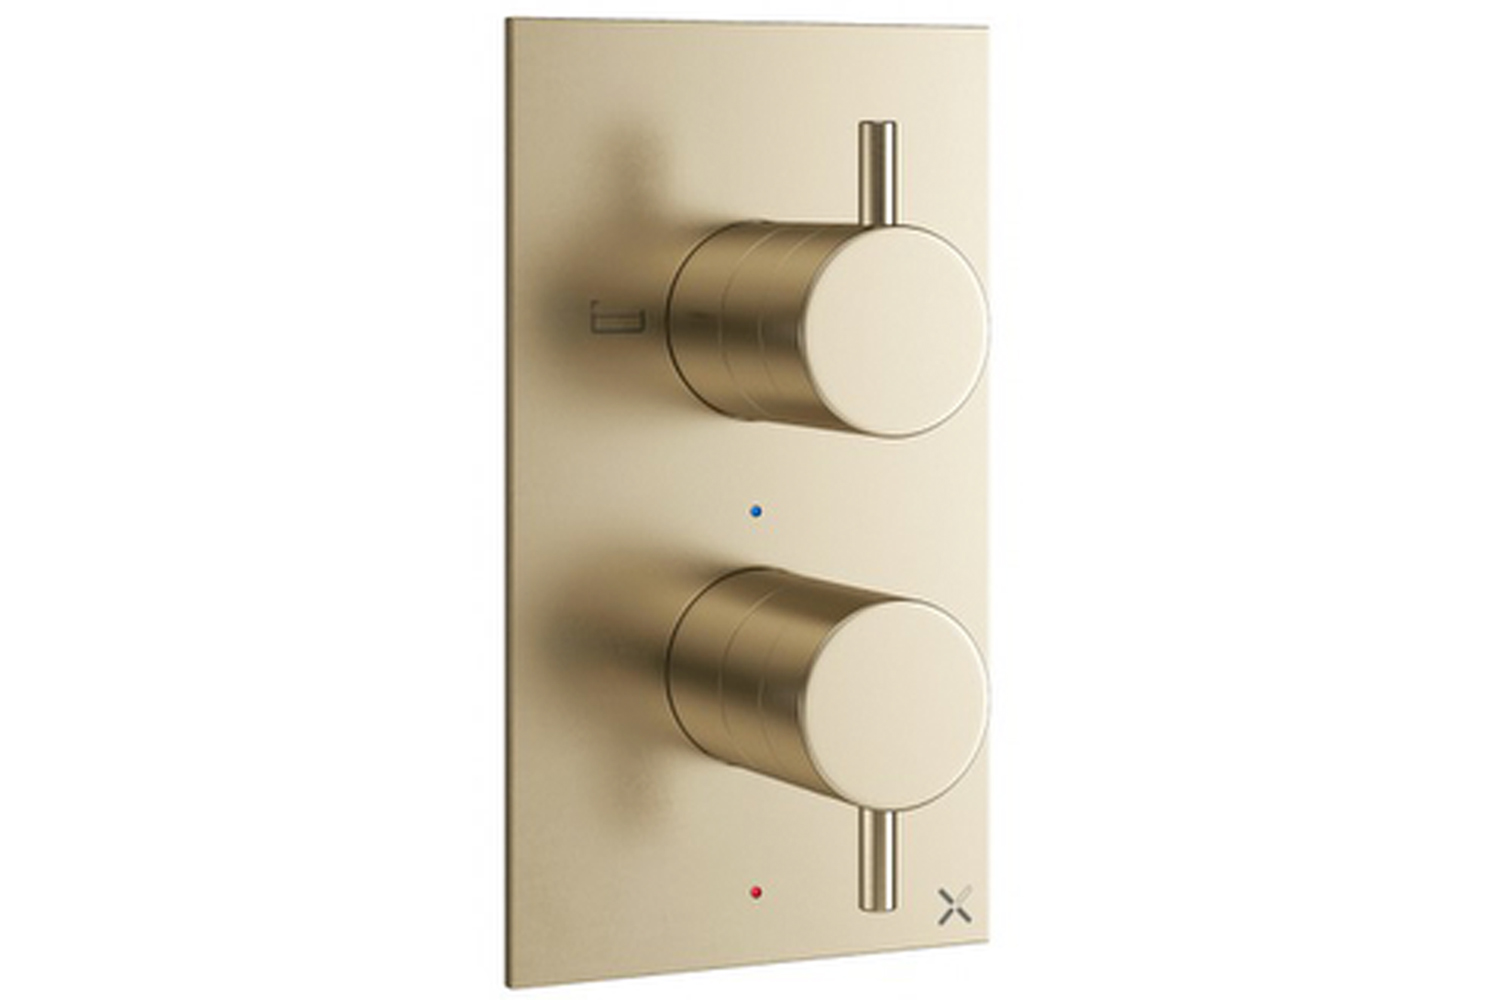 The MPRO collection is made up of polished chrome, polished nickel and stainless.